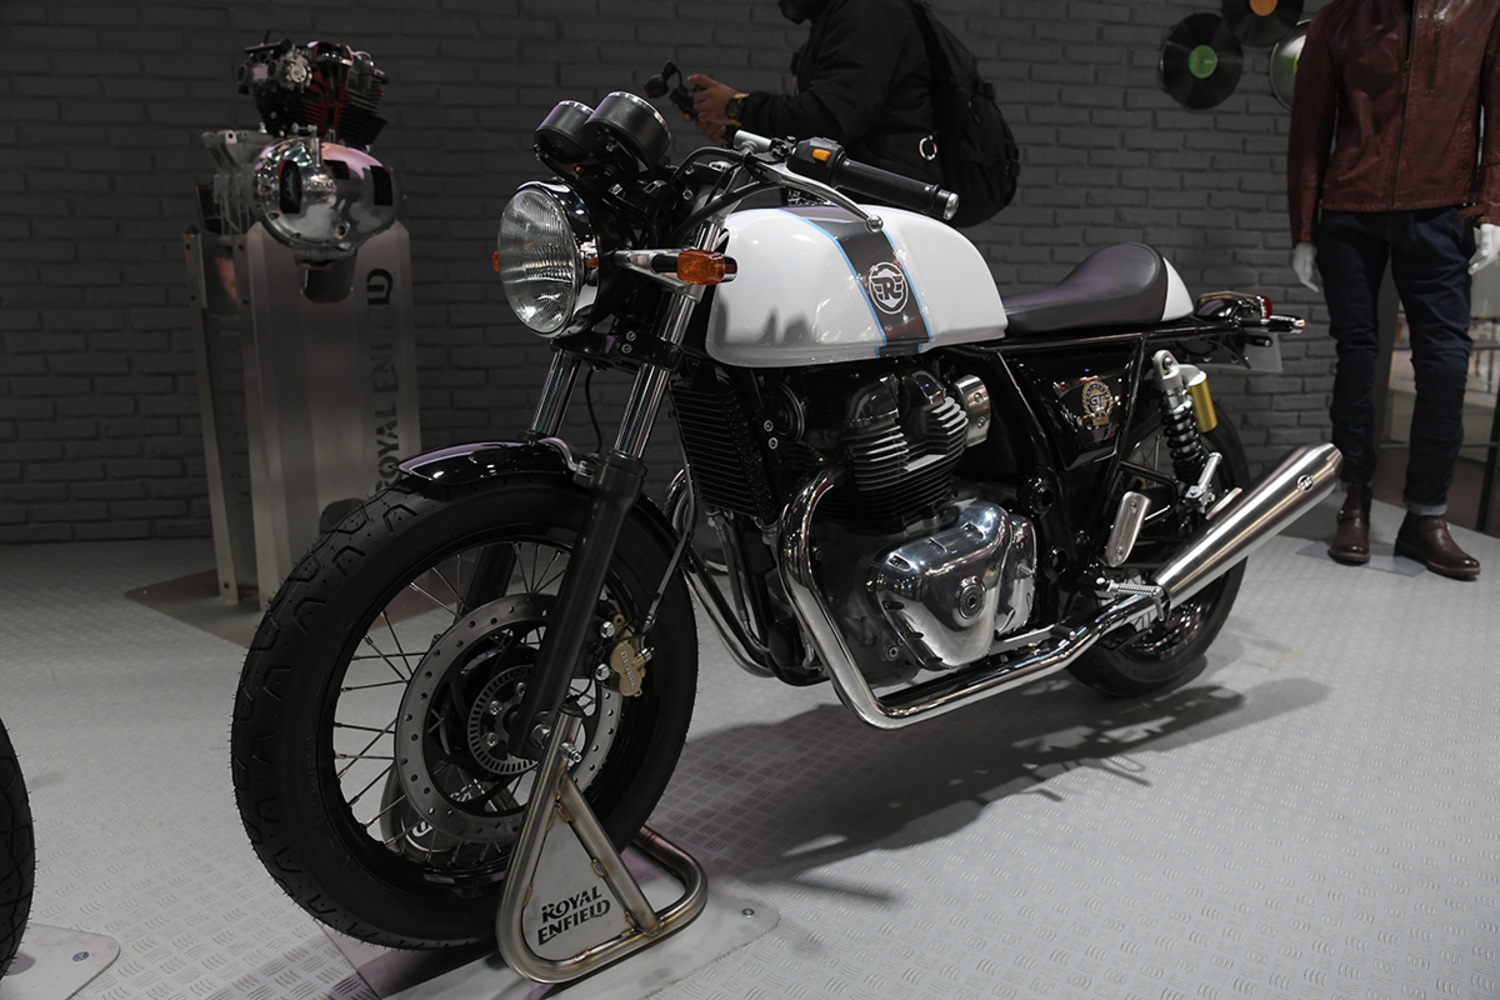 EICMA 2017. Royal Enfield Interceptor INT 650 - Continental GT 650